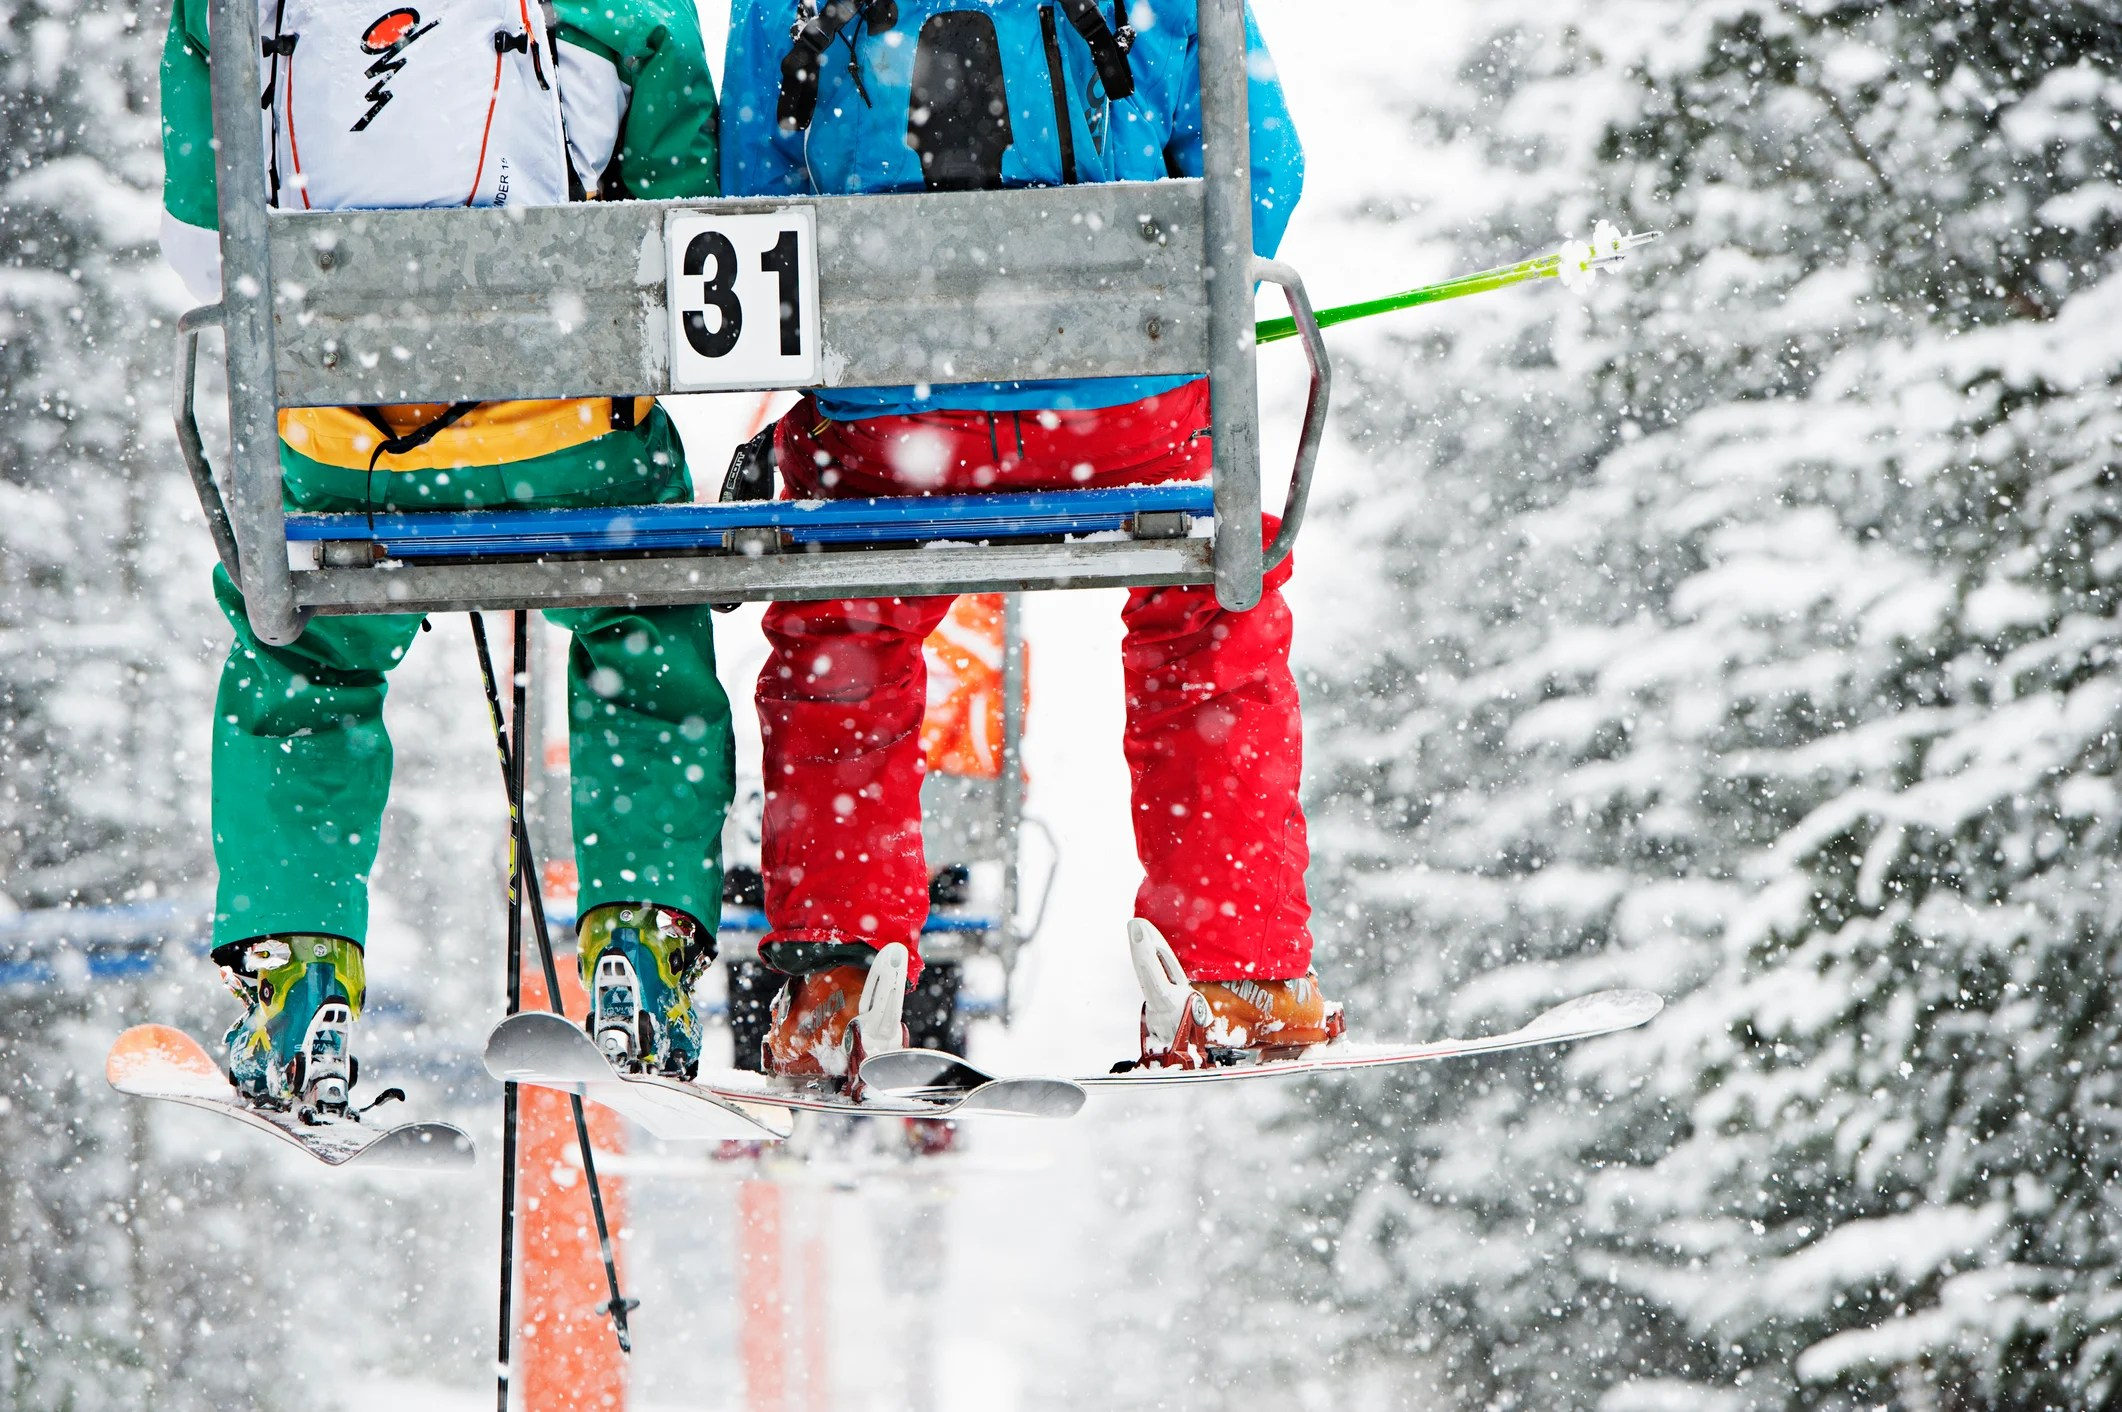 Senior ski bunnies can hit the slopes for free at these 117 resorts